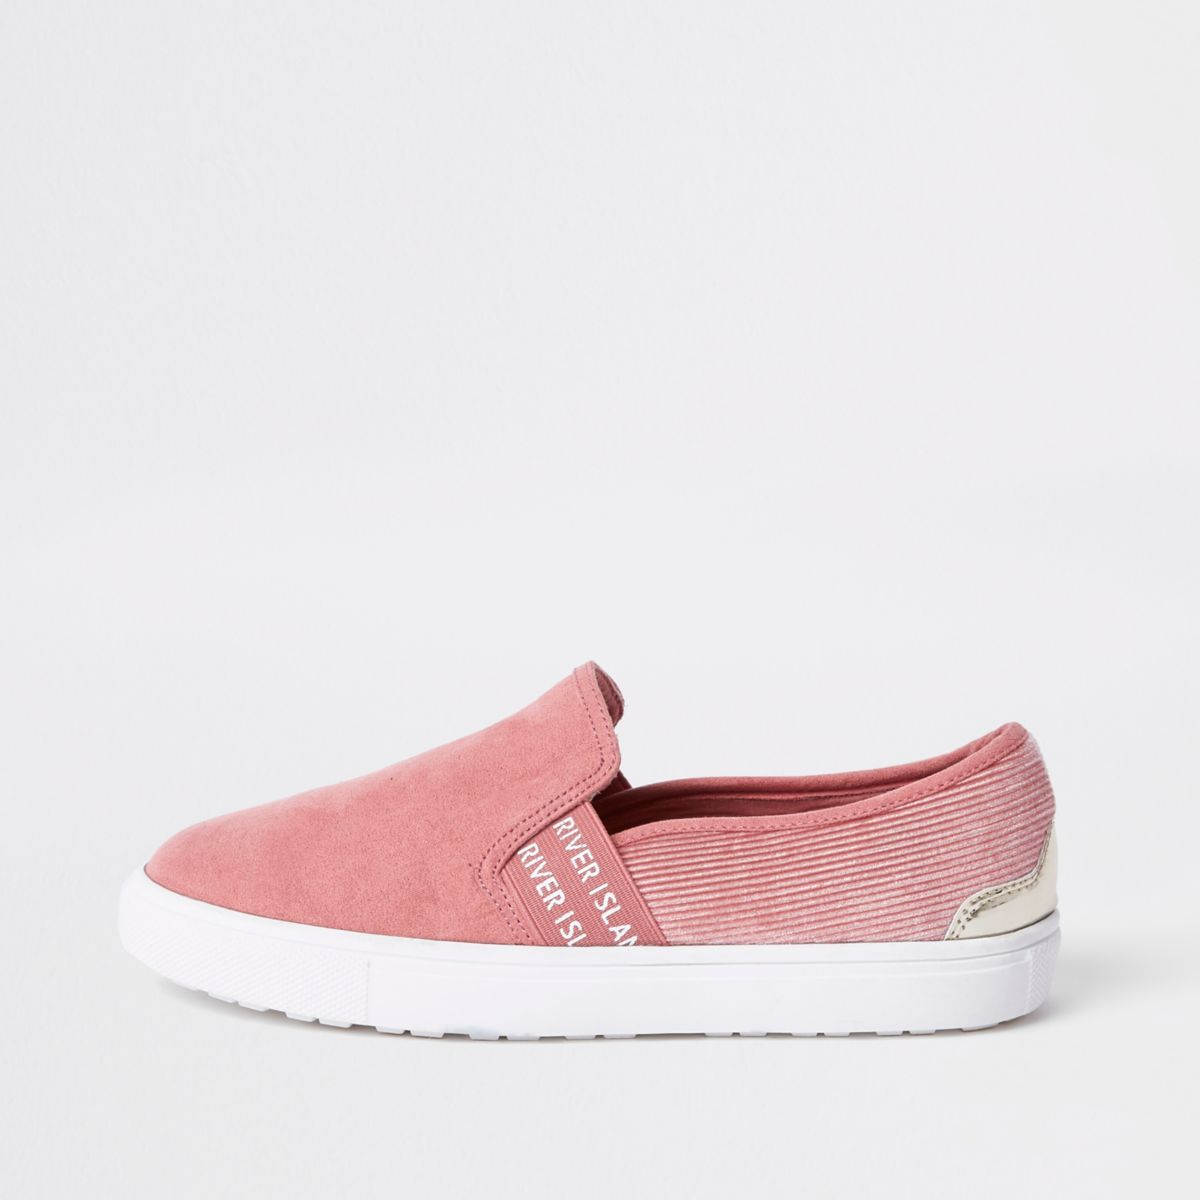 Pink RI branded slip on plimsolls